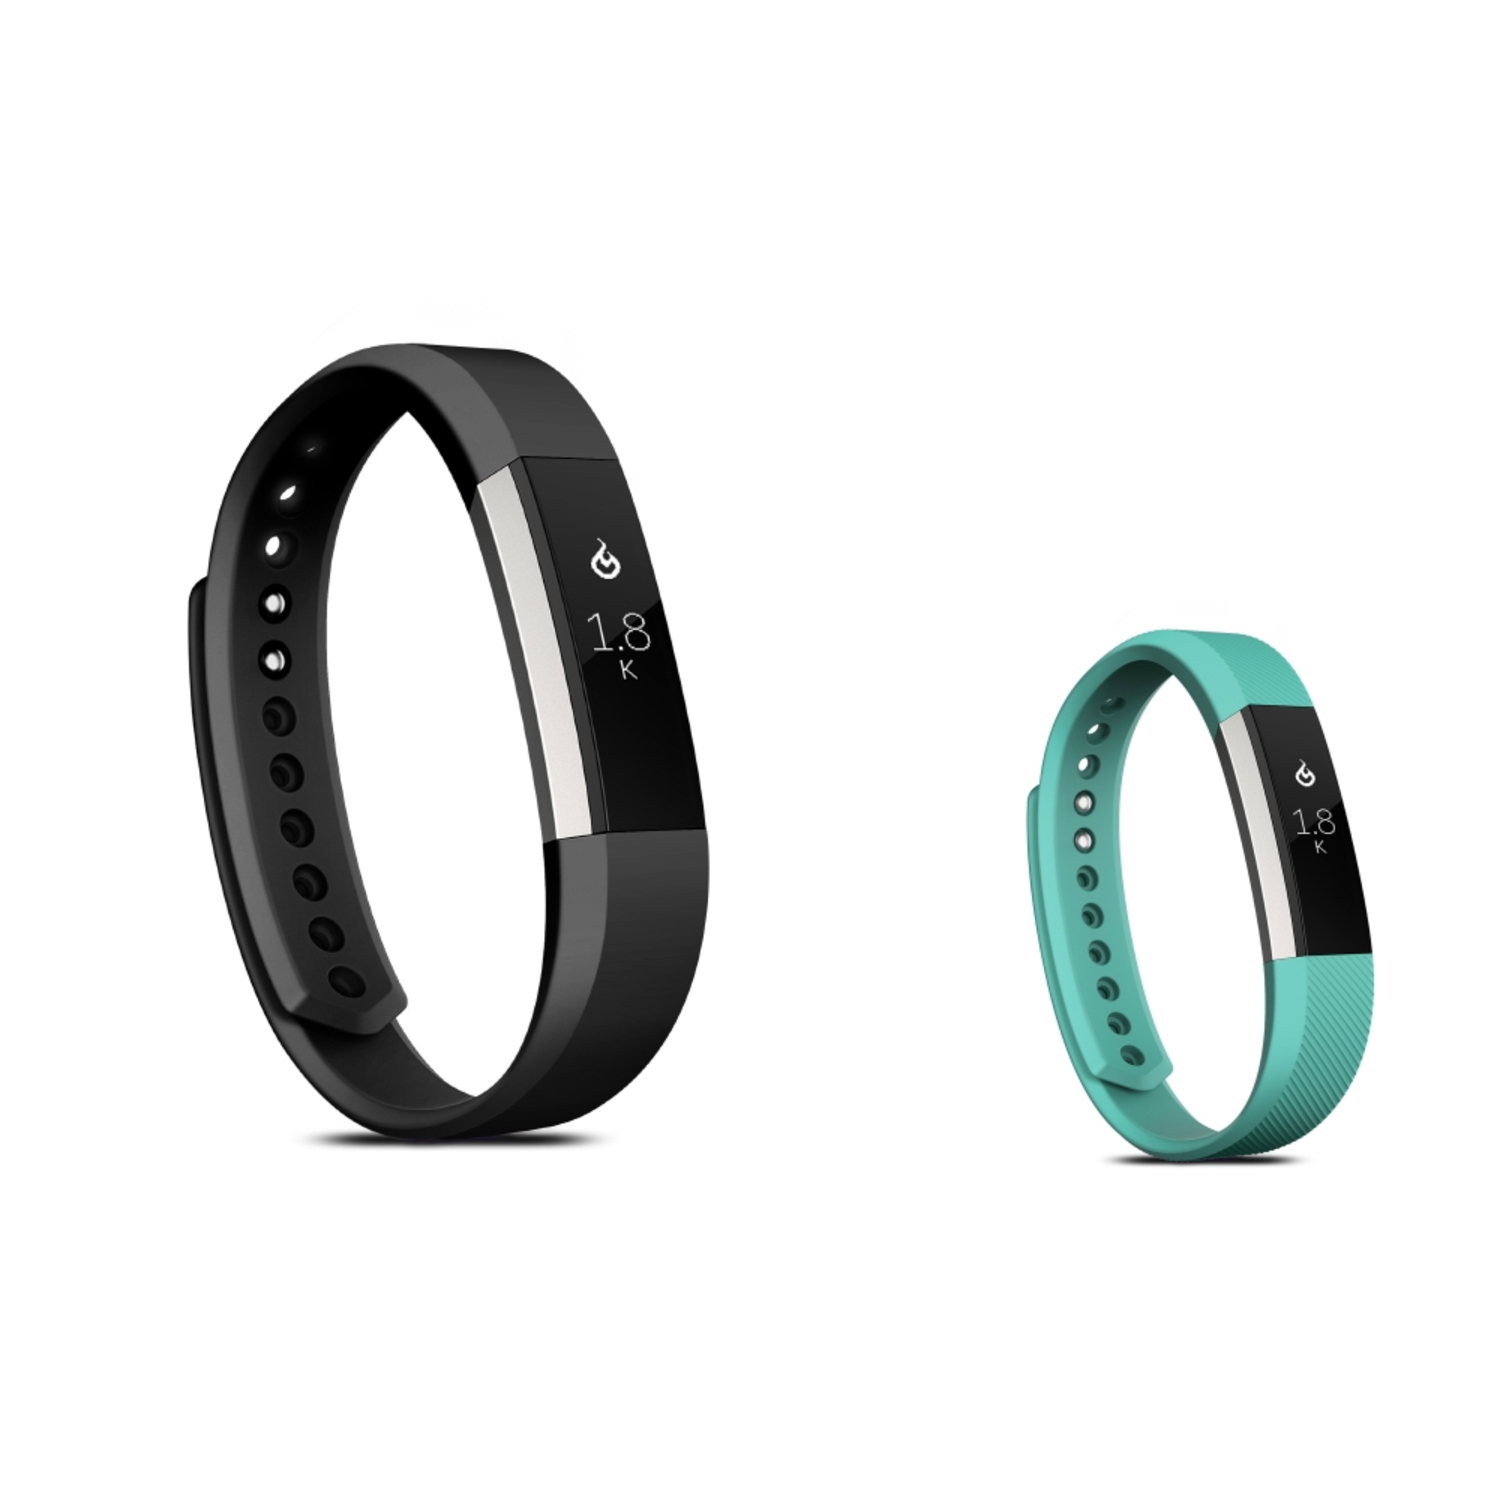 Zodaca Soft TPU Rubber Adjustable Wristbands Watch Band Strap For Fitbit Alta HR / Alta LARGE Size - Black + Mint Green